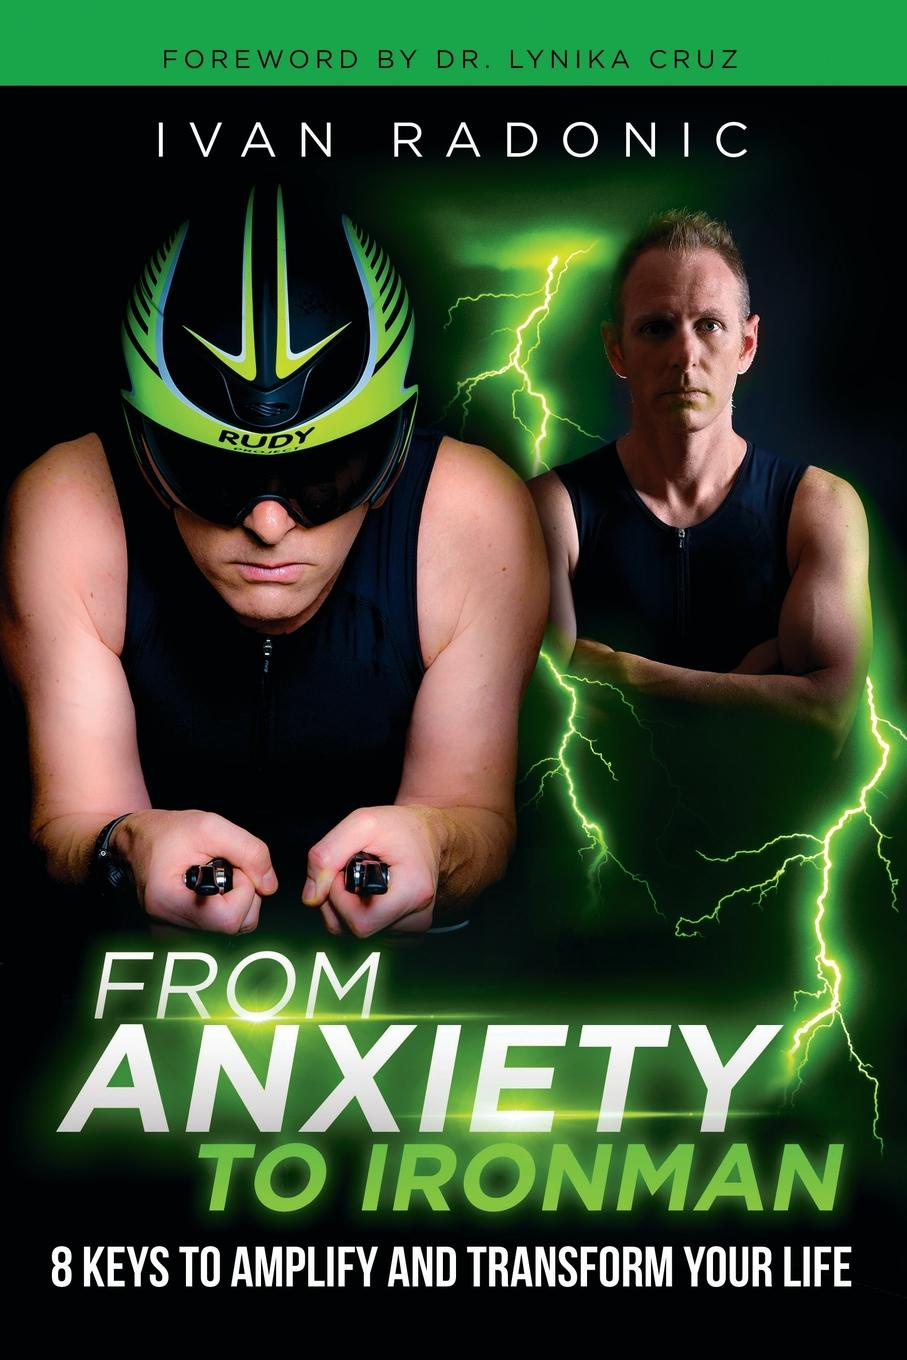 Ivan Radonic From Anxiety To Ironman. 8 Keys to Amplify and Transform Your Life